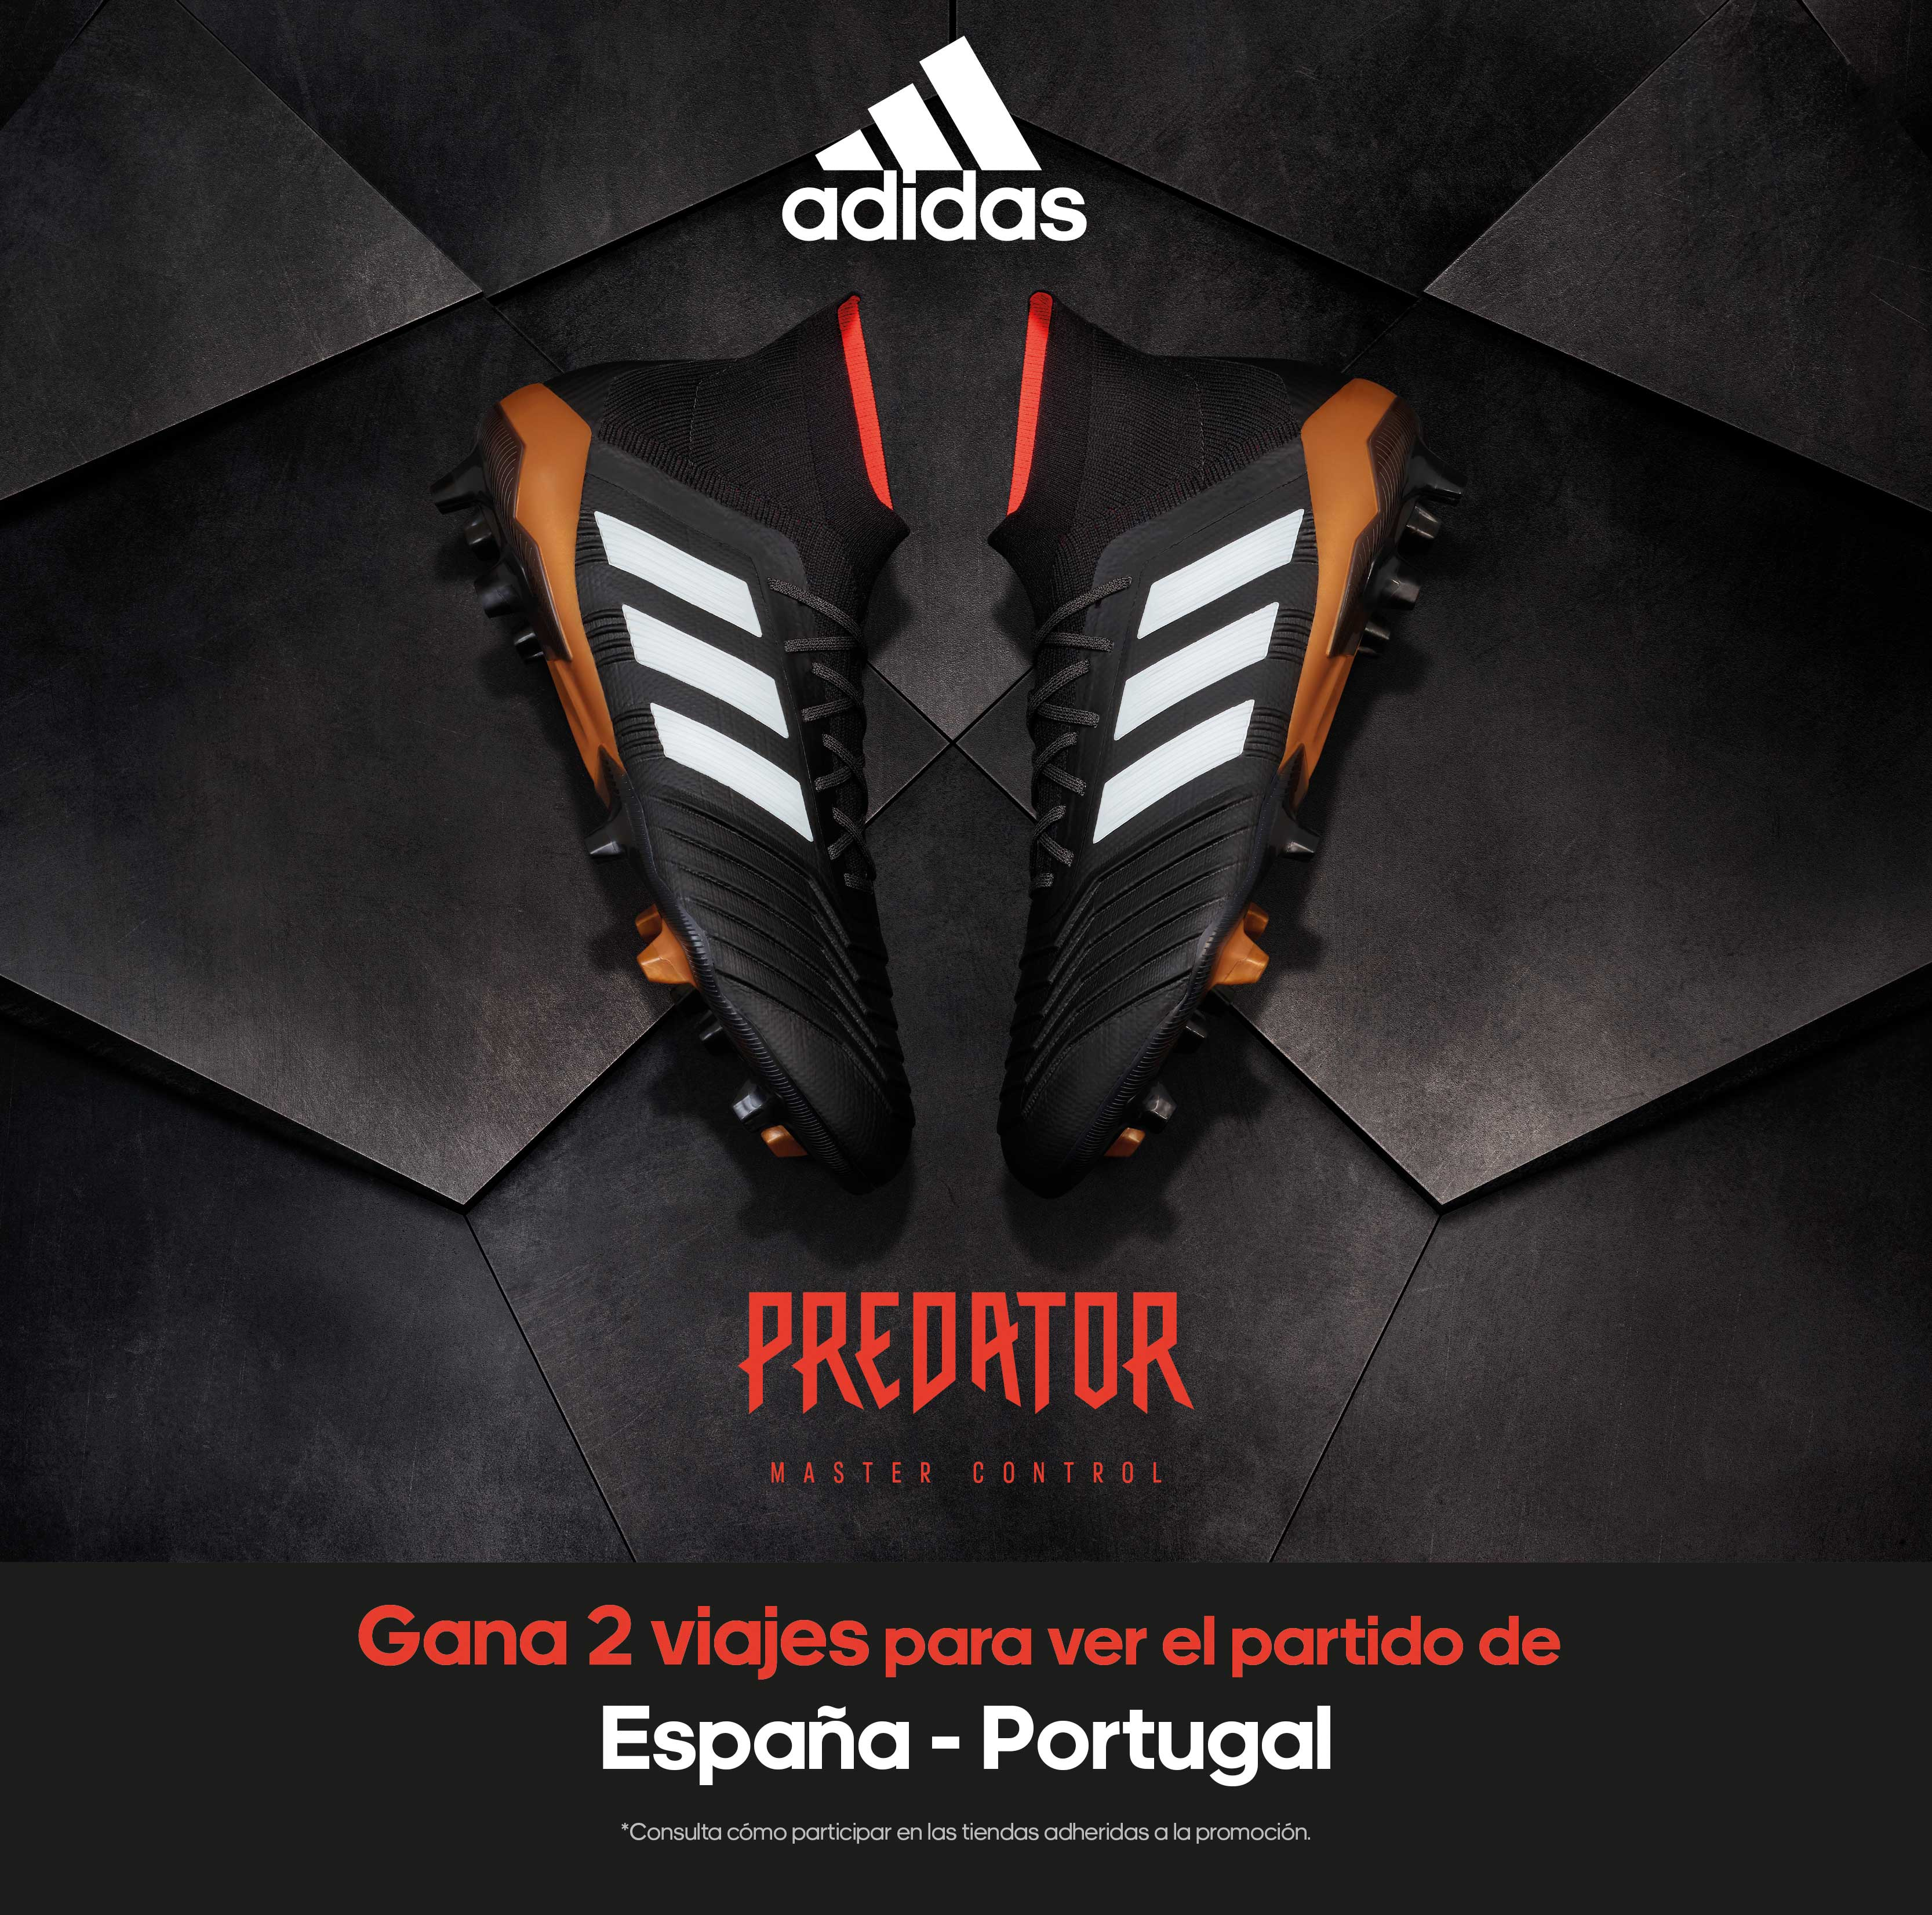 factory authentic e3a23 5e22a ok adidas promo-Rusia post